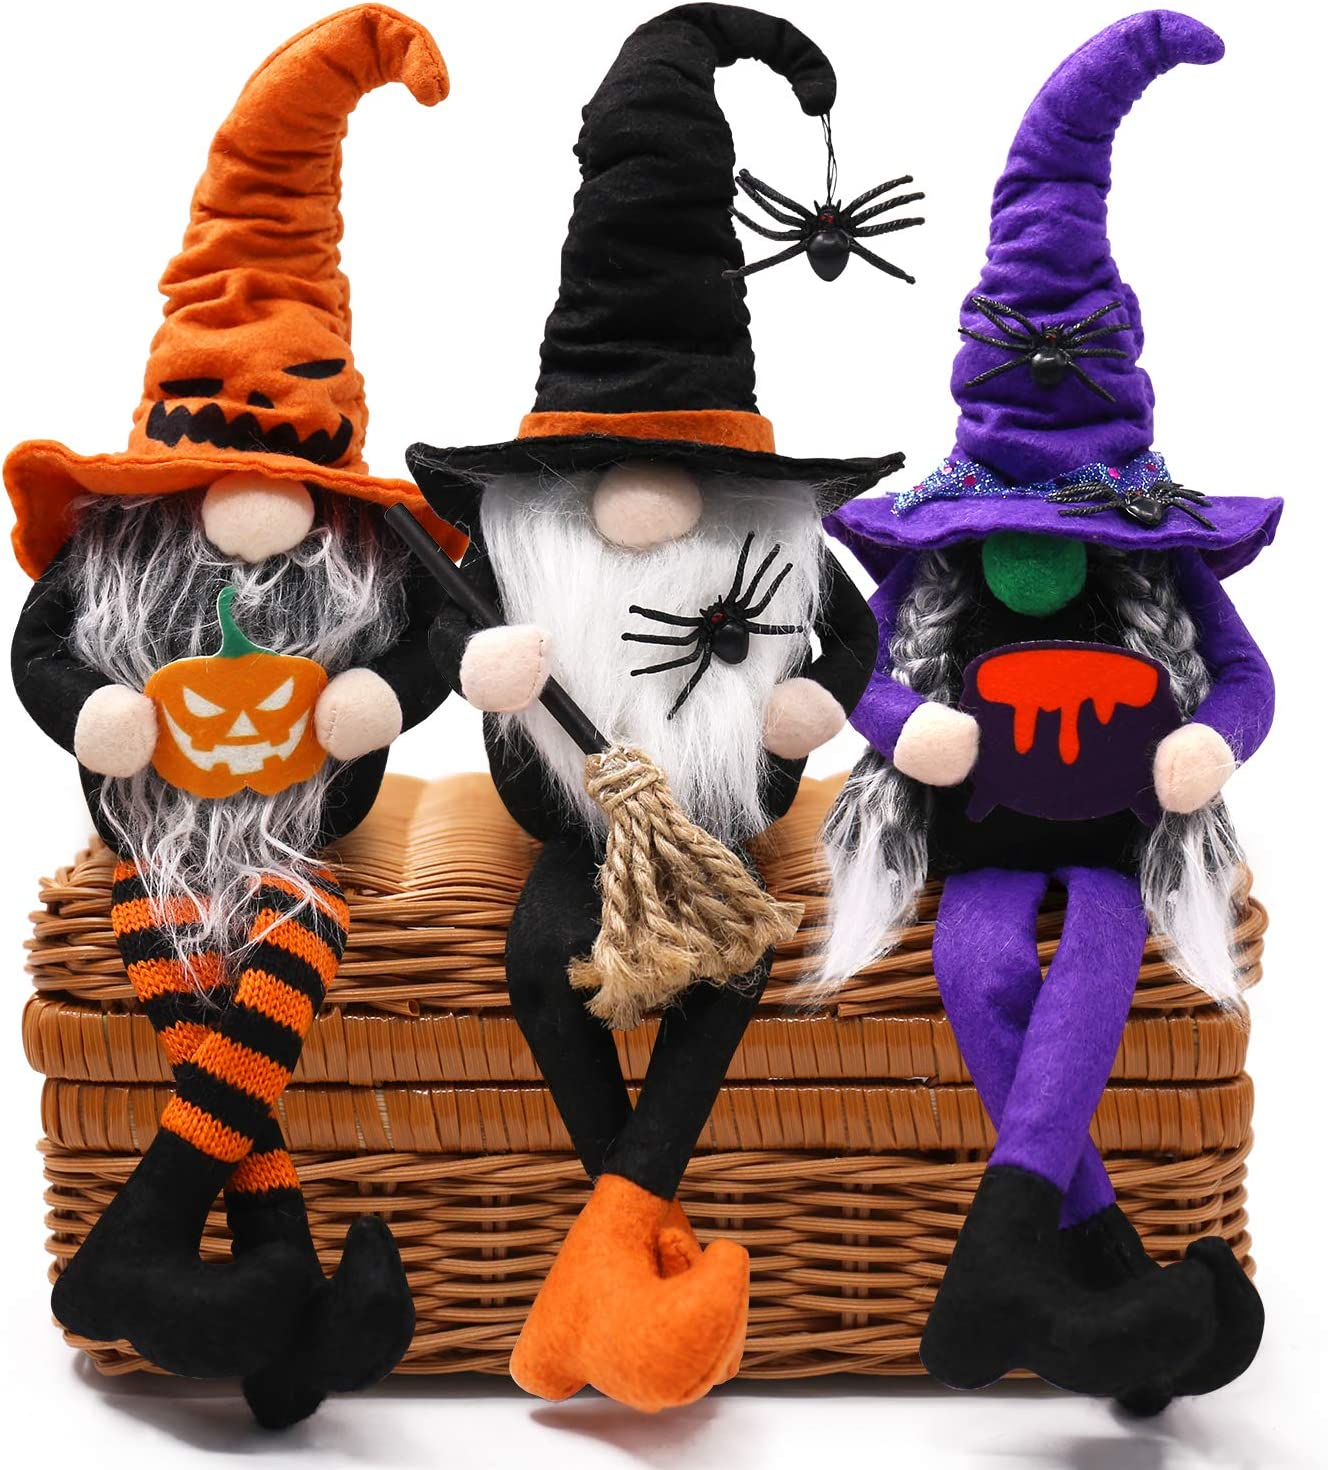 CiyvoLyeen Halloween Dangle Leg Gnomes Decorations Shelf Sitters Handmade Halloween Decor Tomte Swedish Gnome Nisse Scandinavian Gnomes Plush Elf Dwarf Home Household Ornaments Set of 3